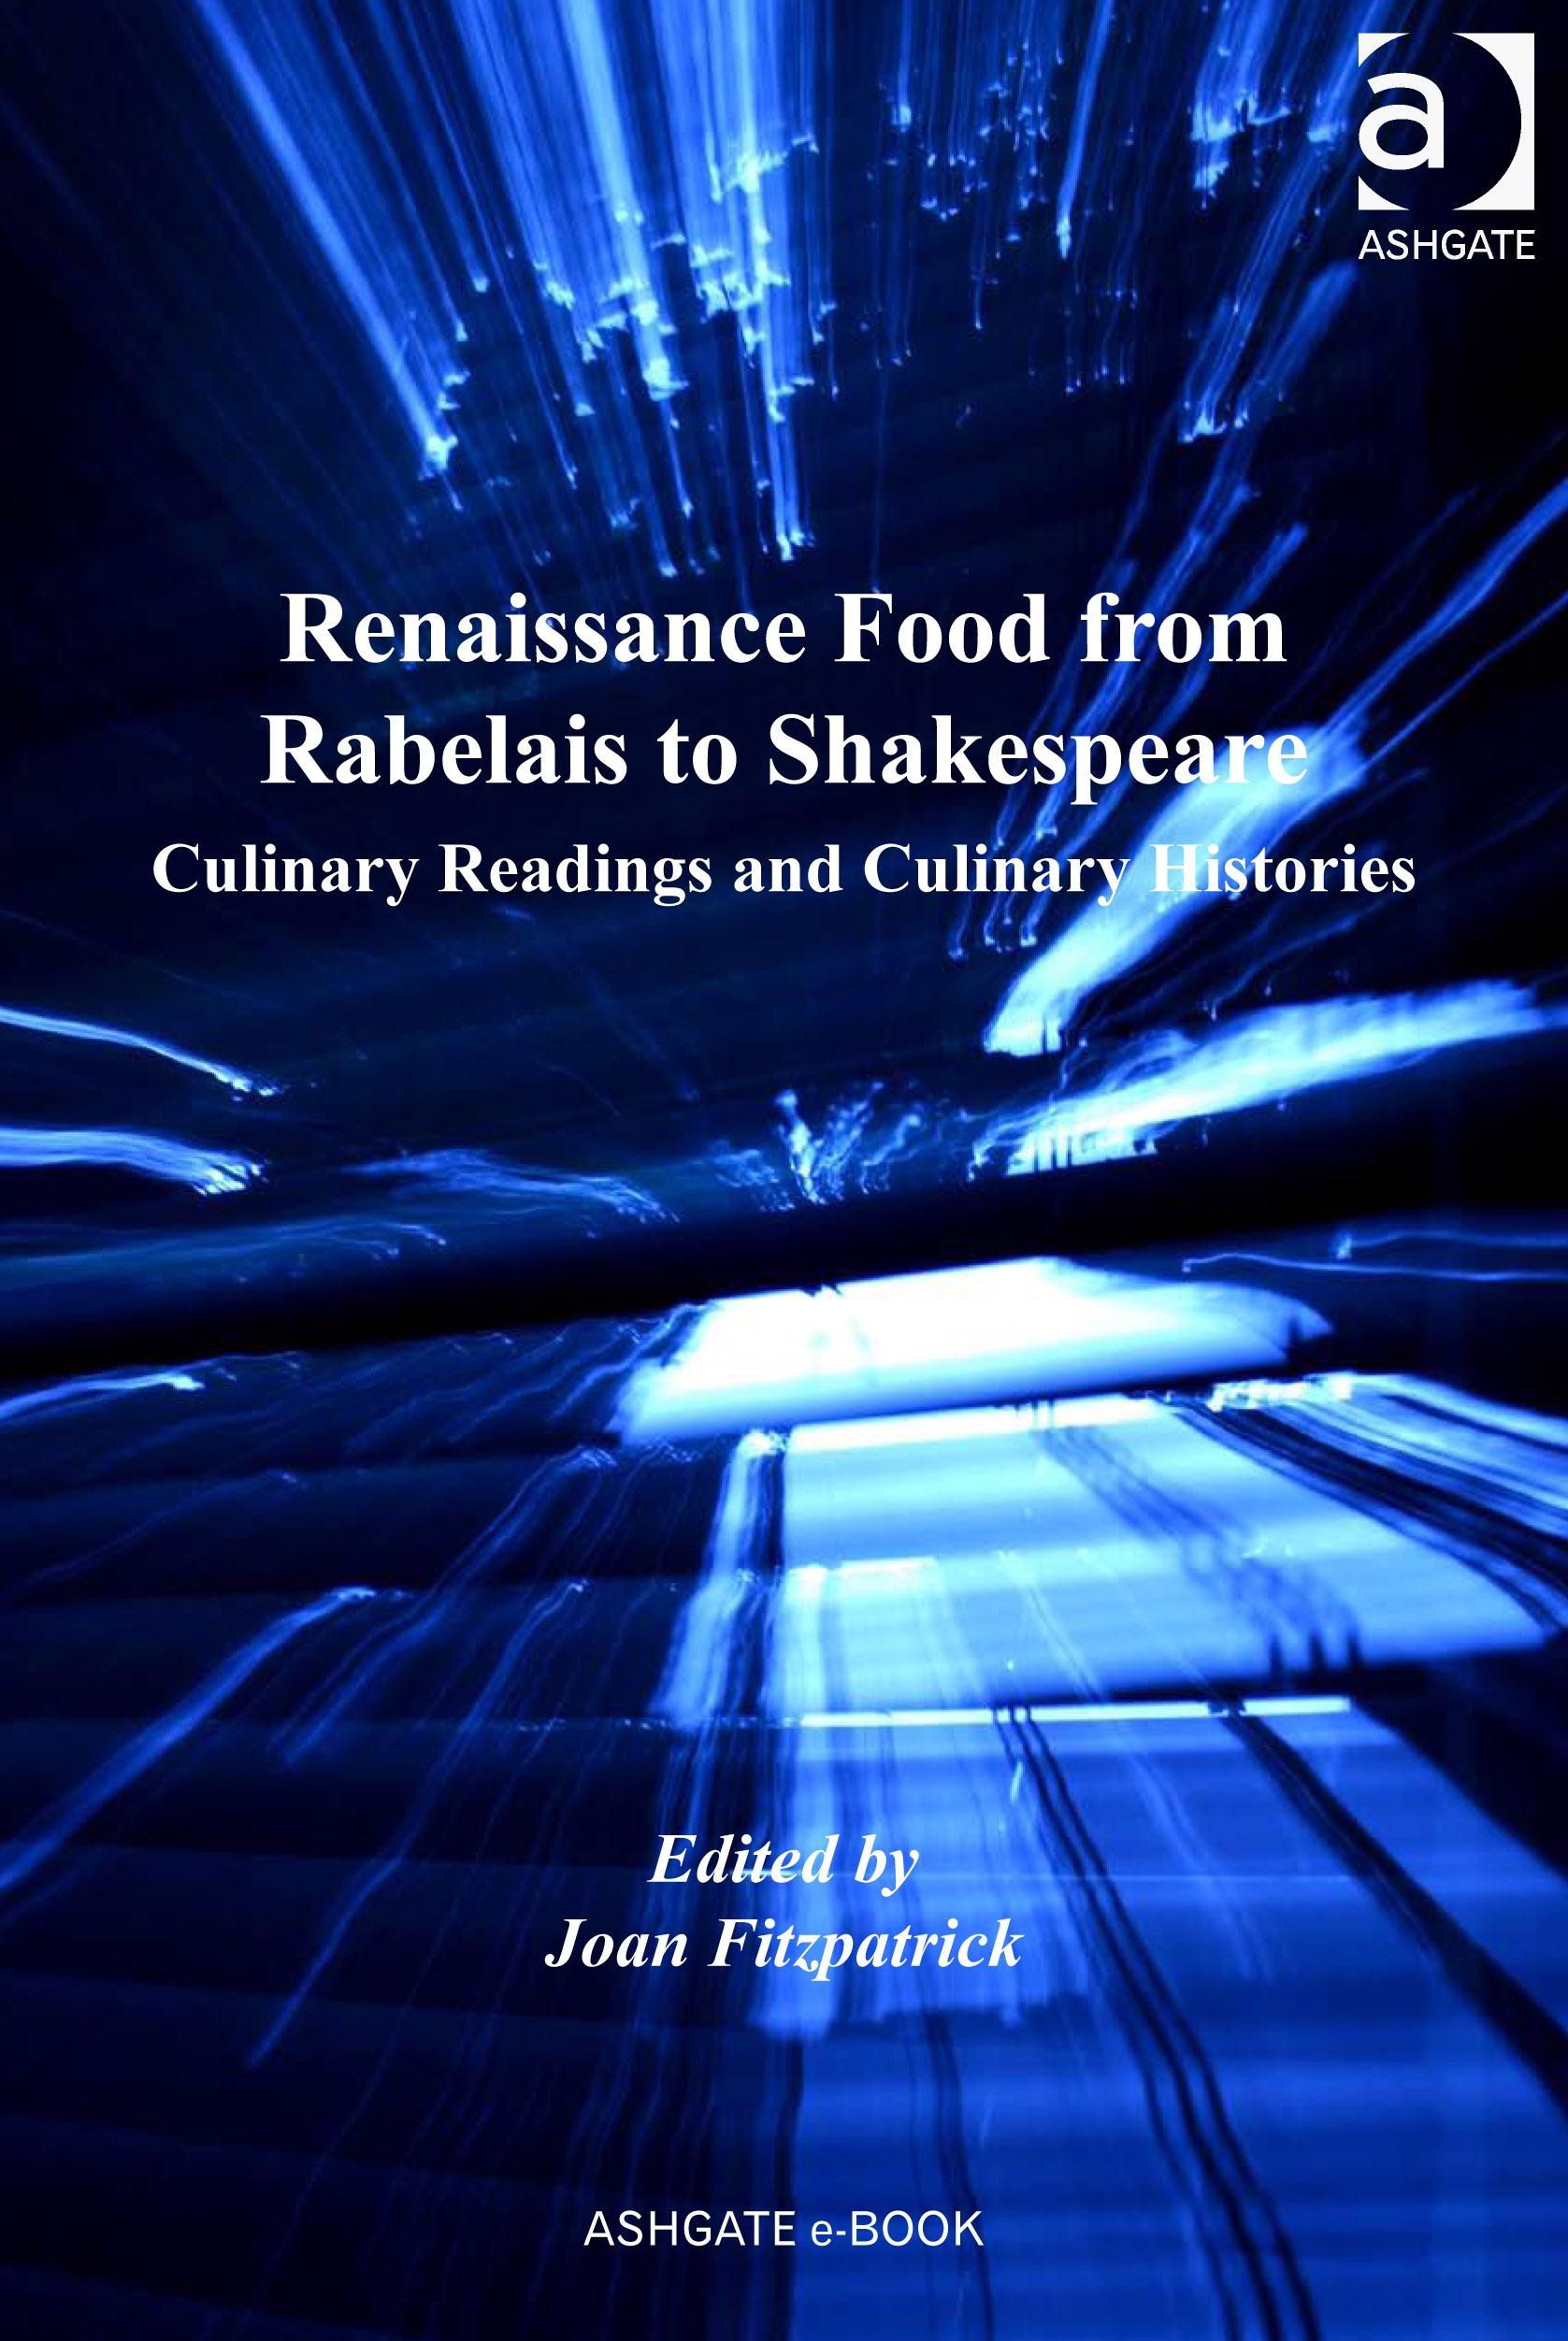 Renaissance Food from Rabelais to Shakespeare: Culinary Readings and Culinary Histories EB9781409401155